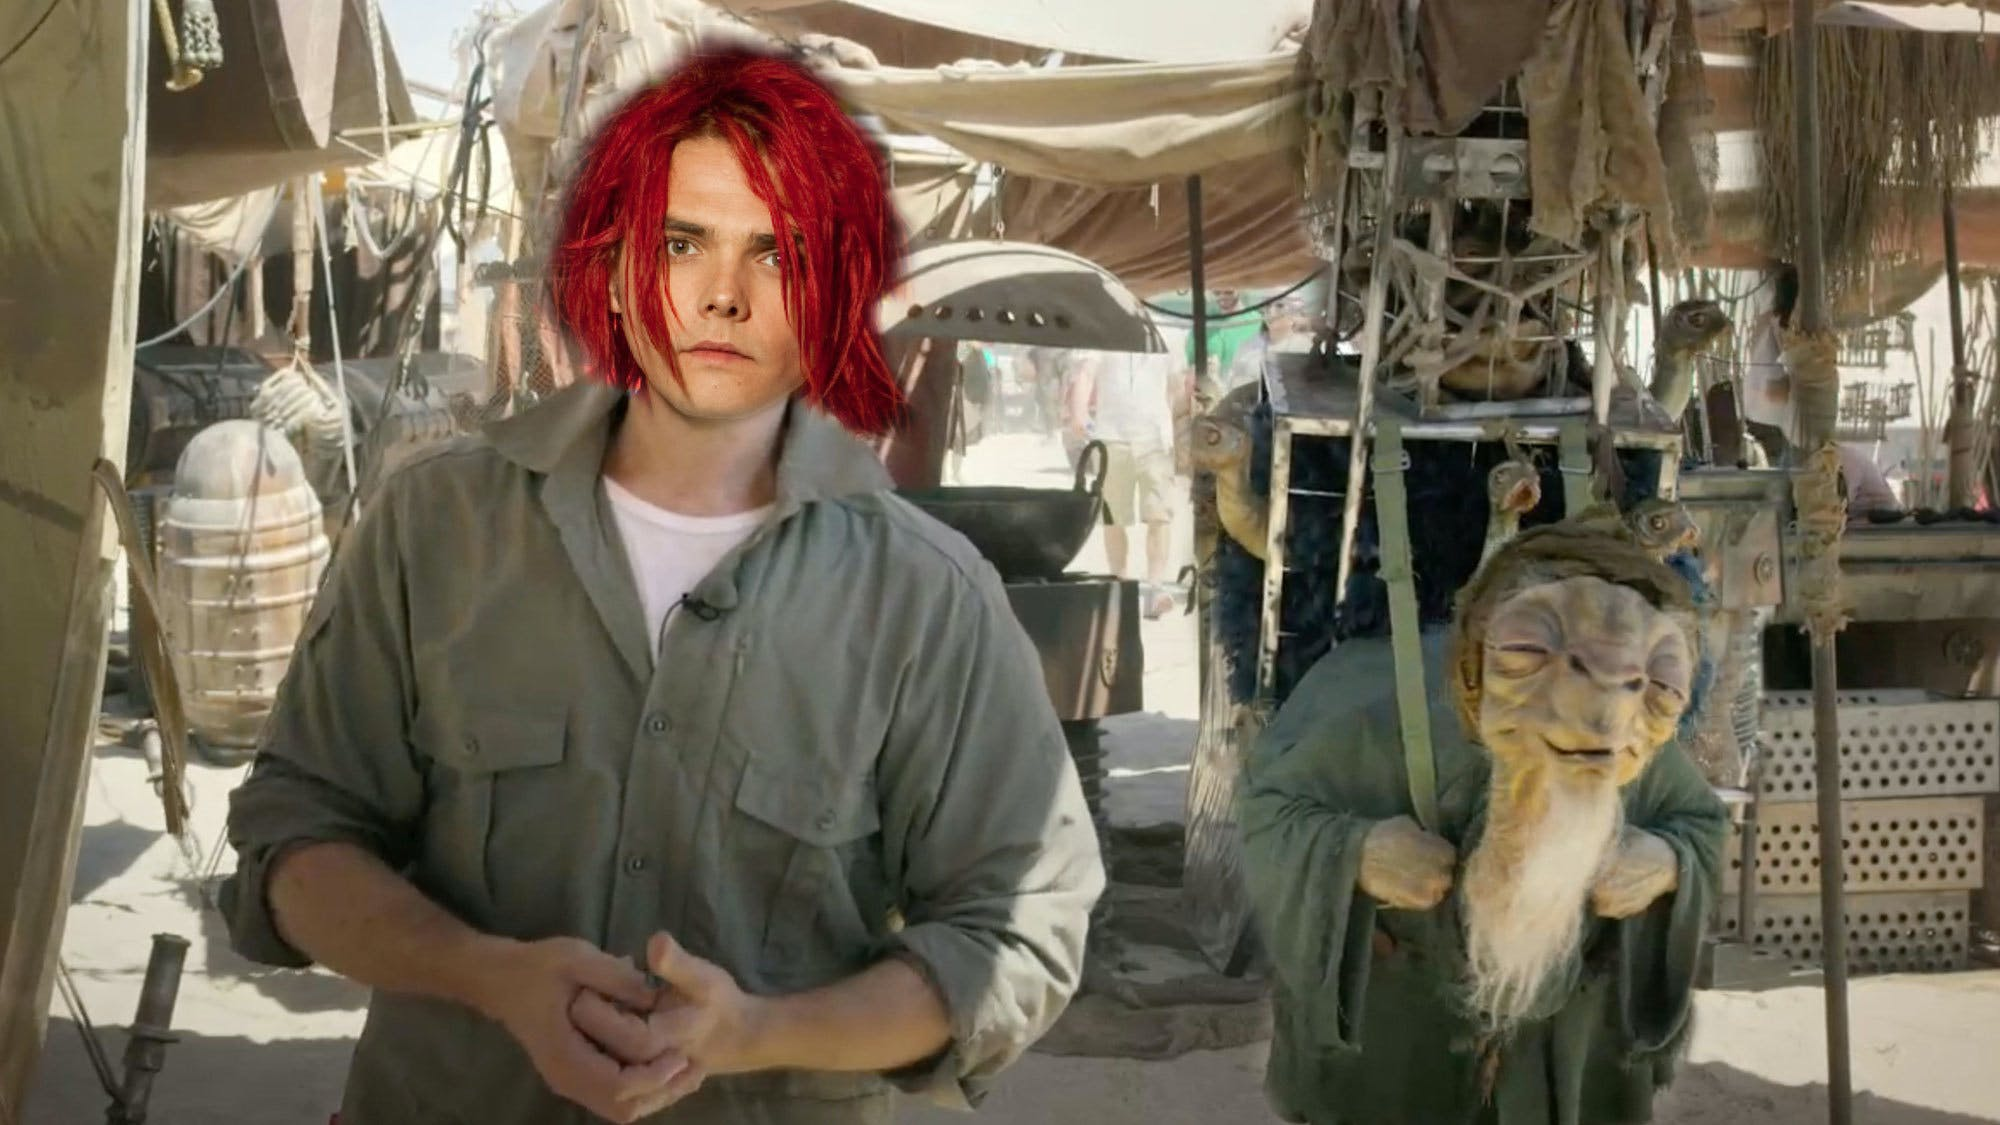 Gerard Way To Direct New Star Wars Movie